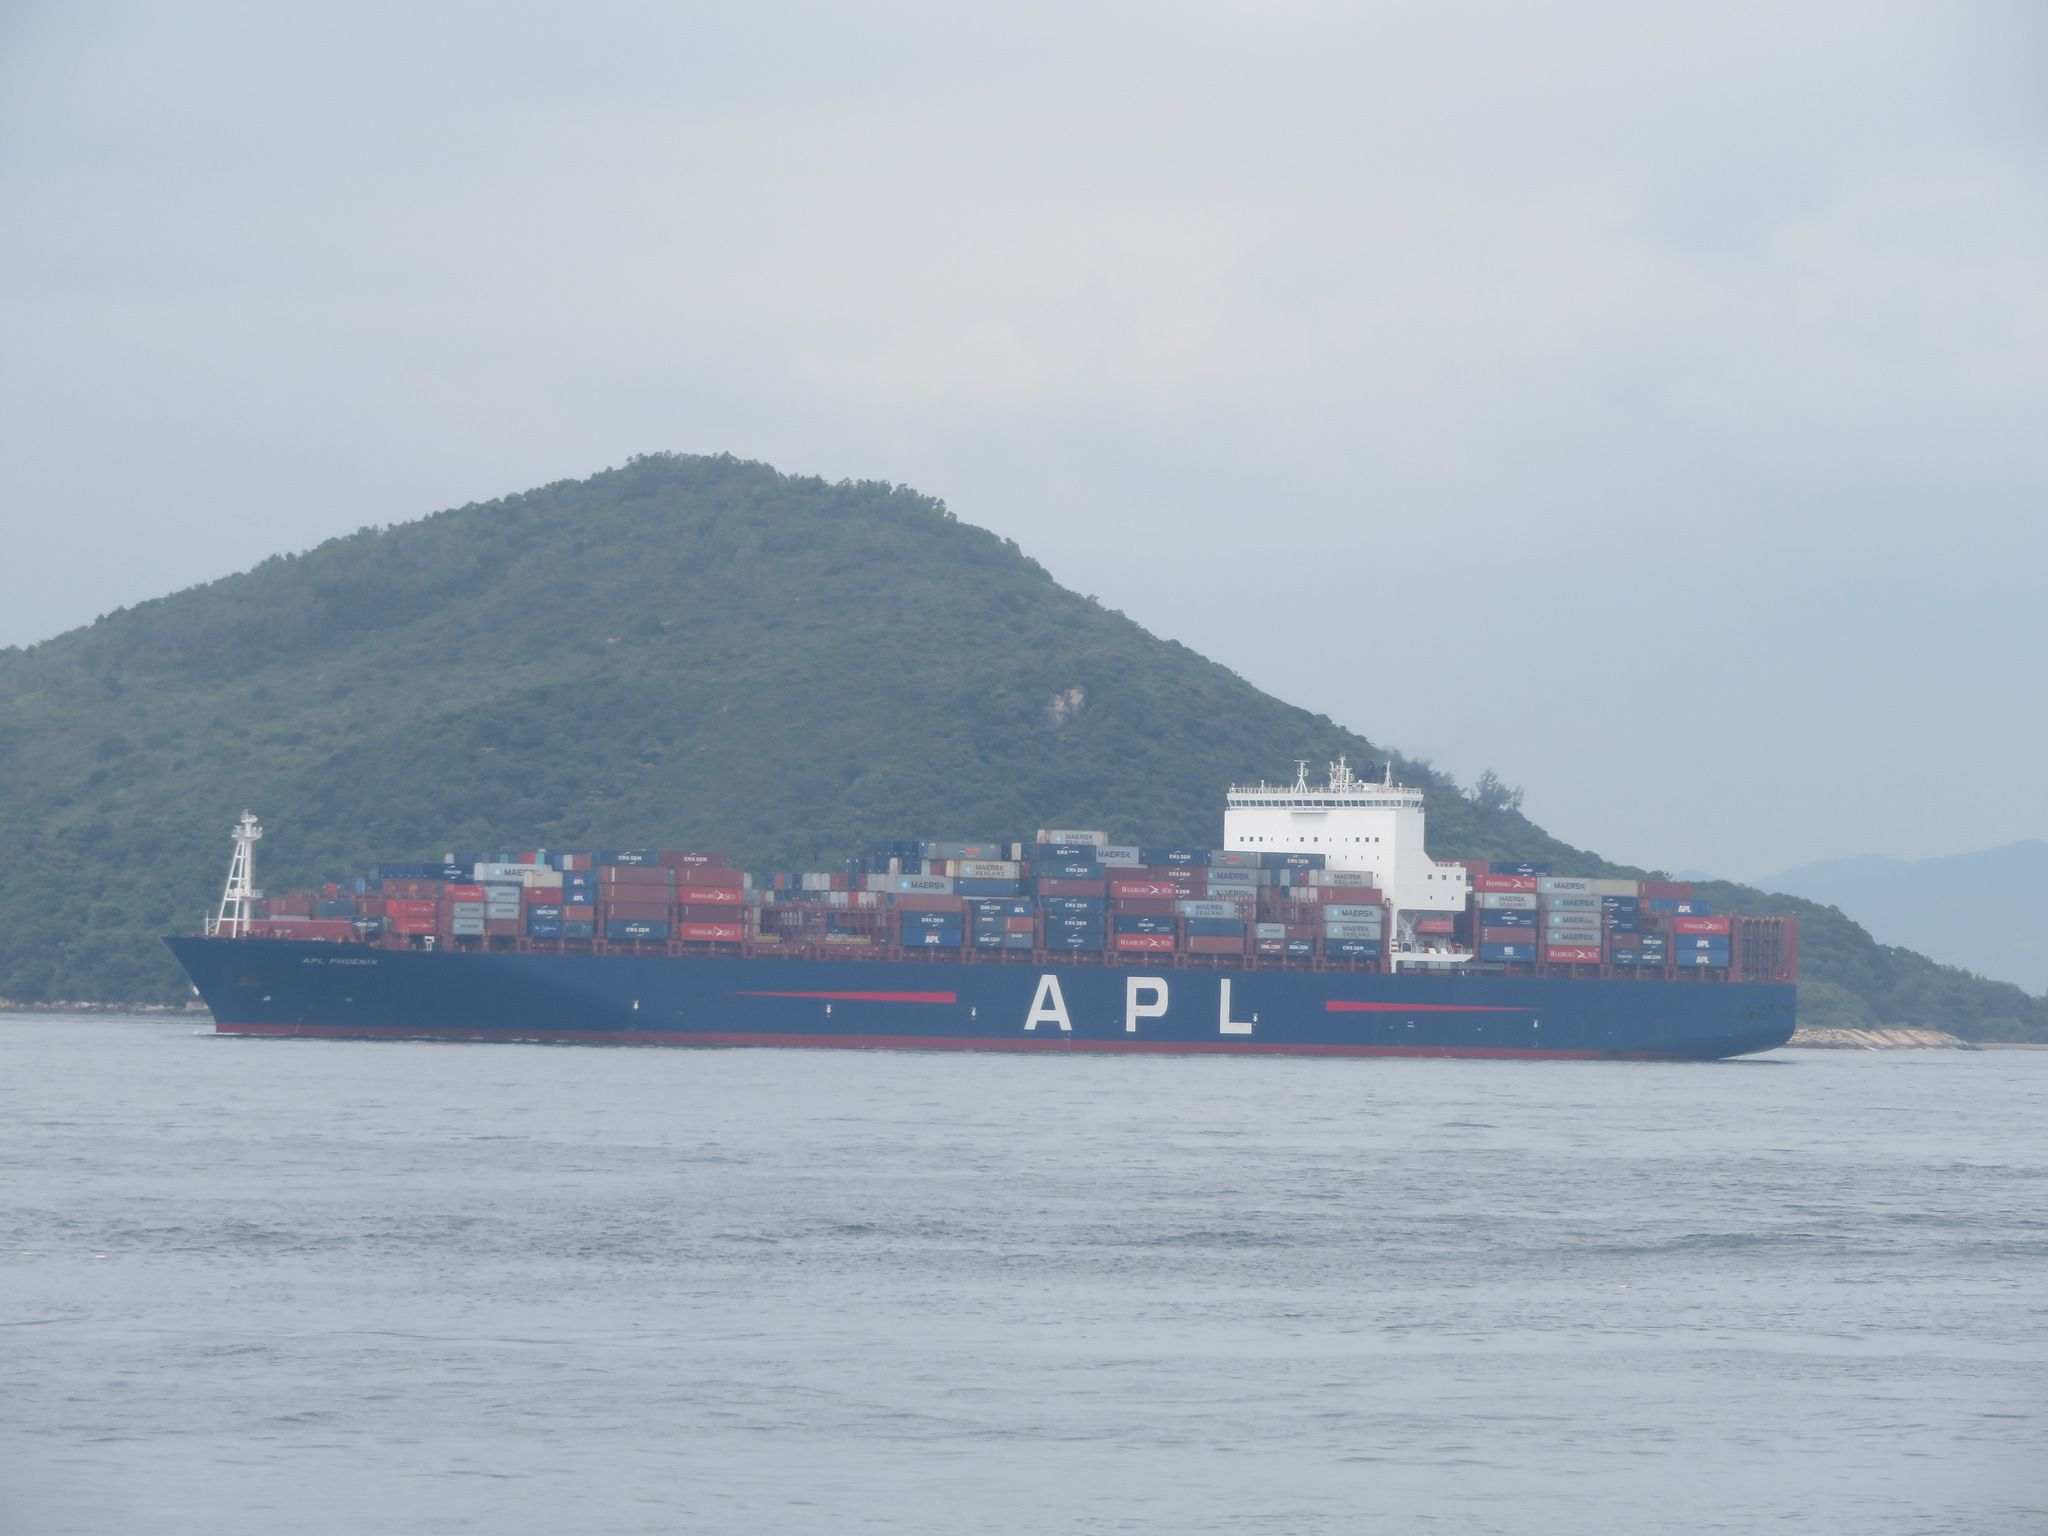 apl phoenix | Container ship | Reefer container, Building, Container